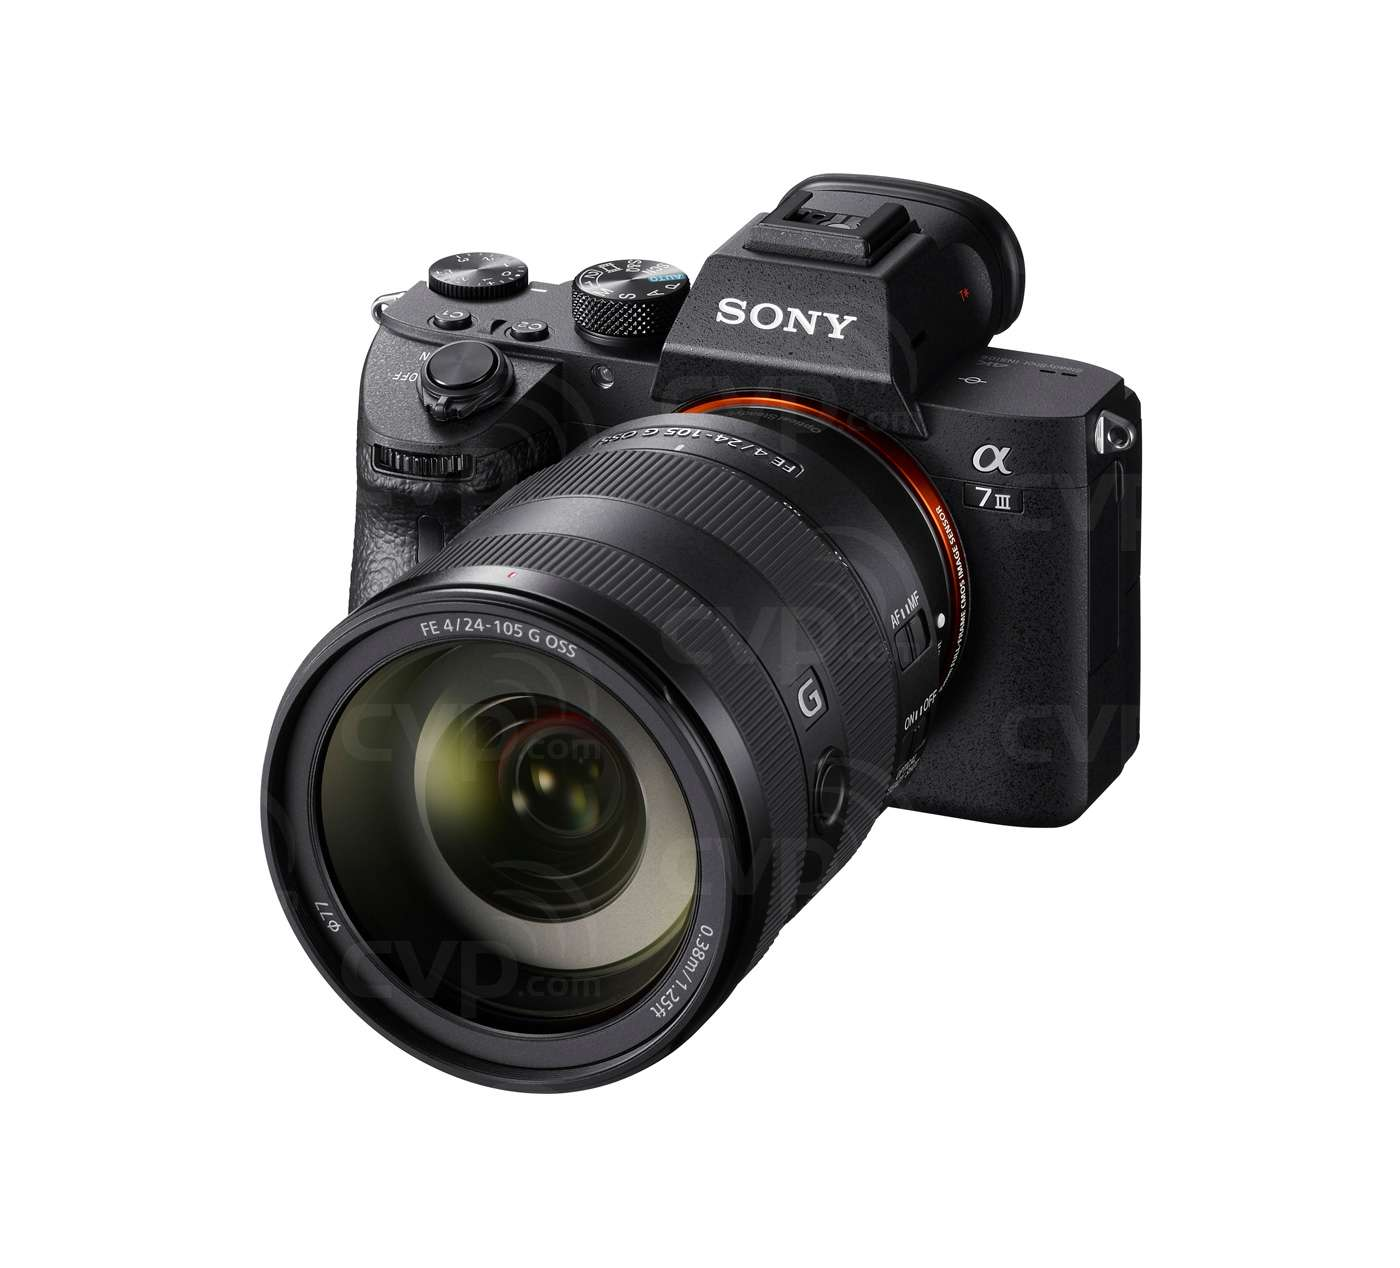 Sony a7 III Camera with 24-105G Lens